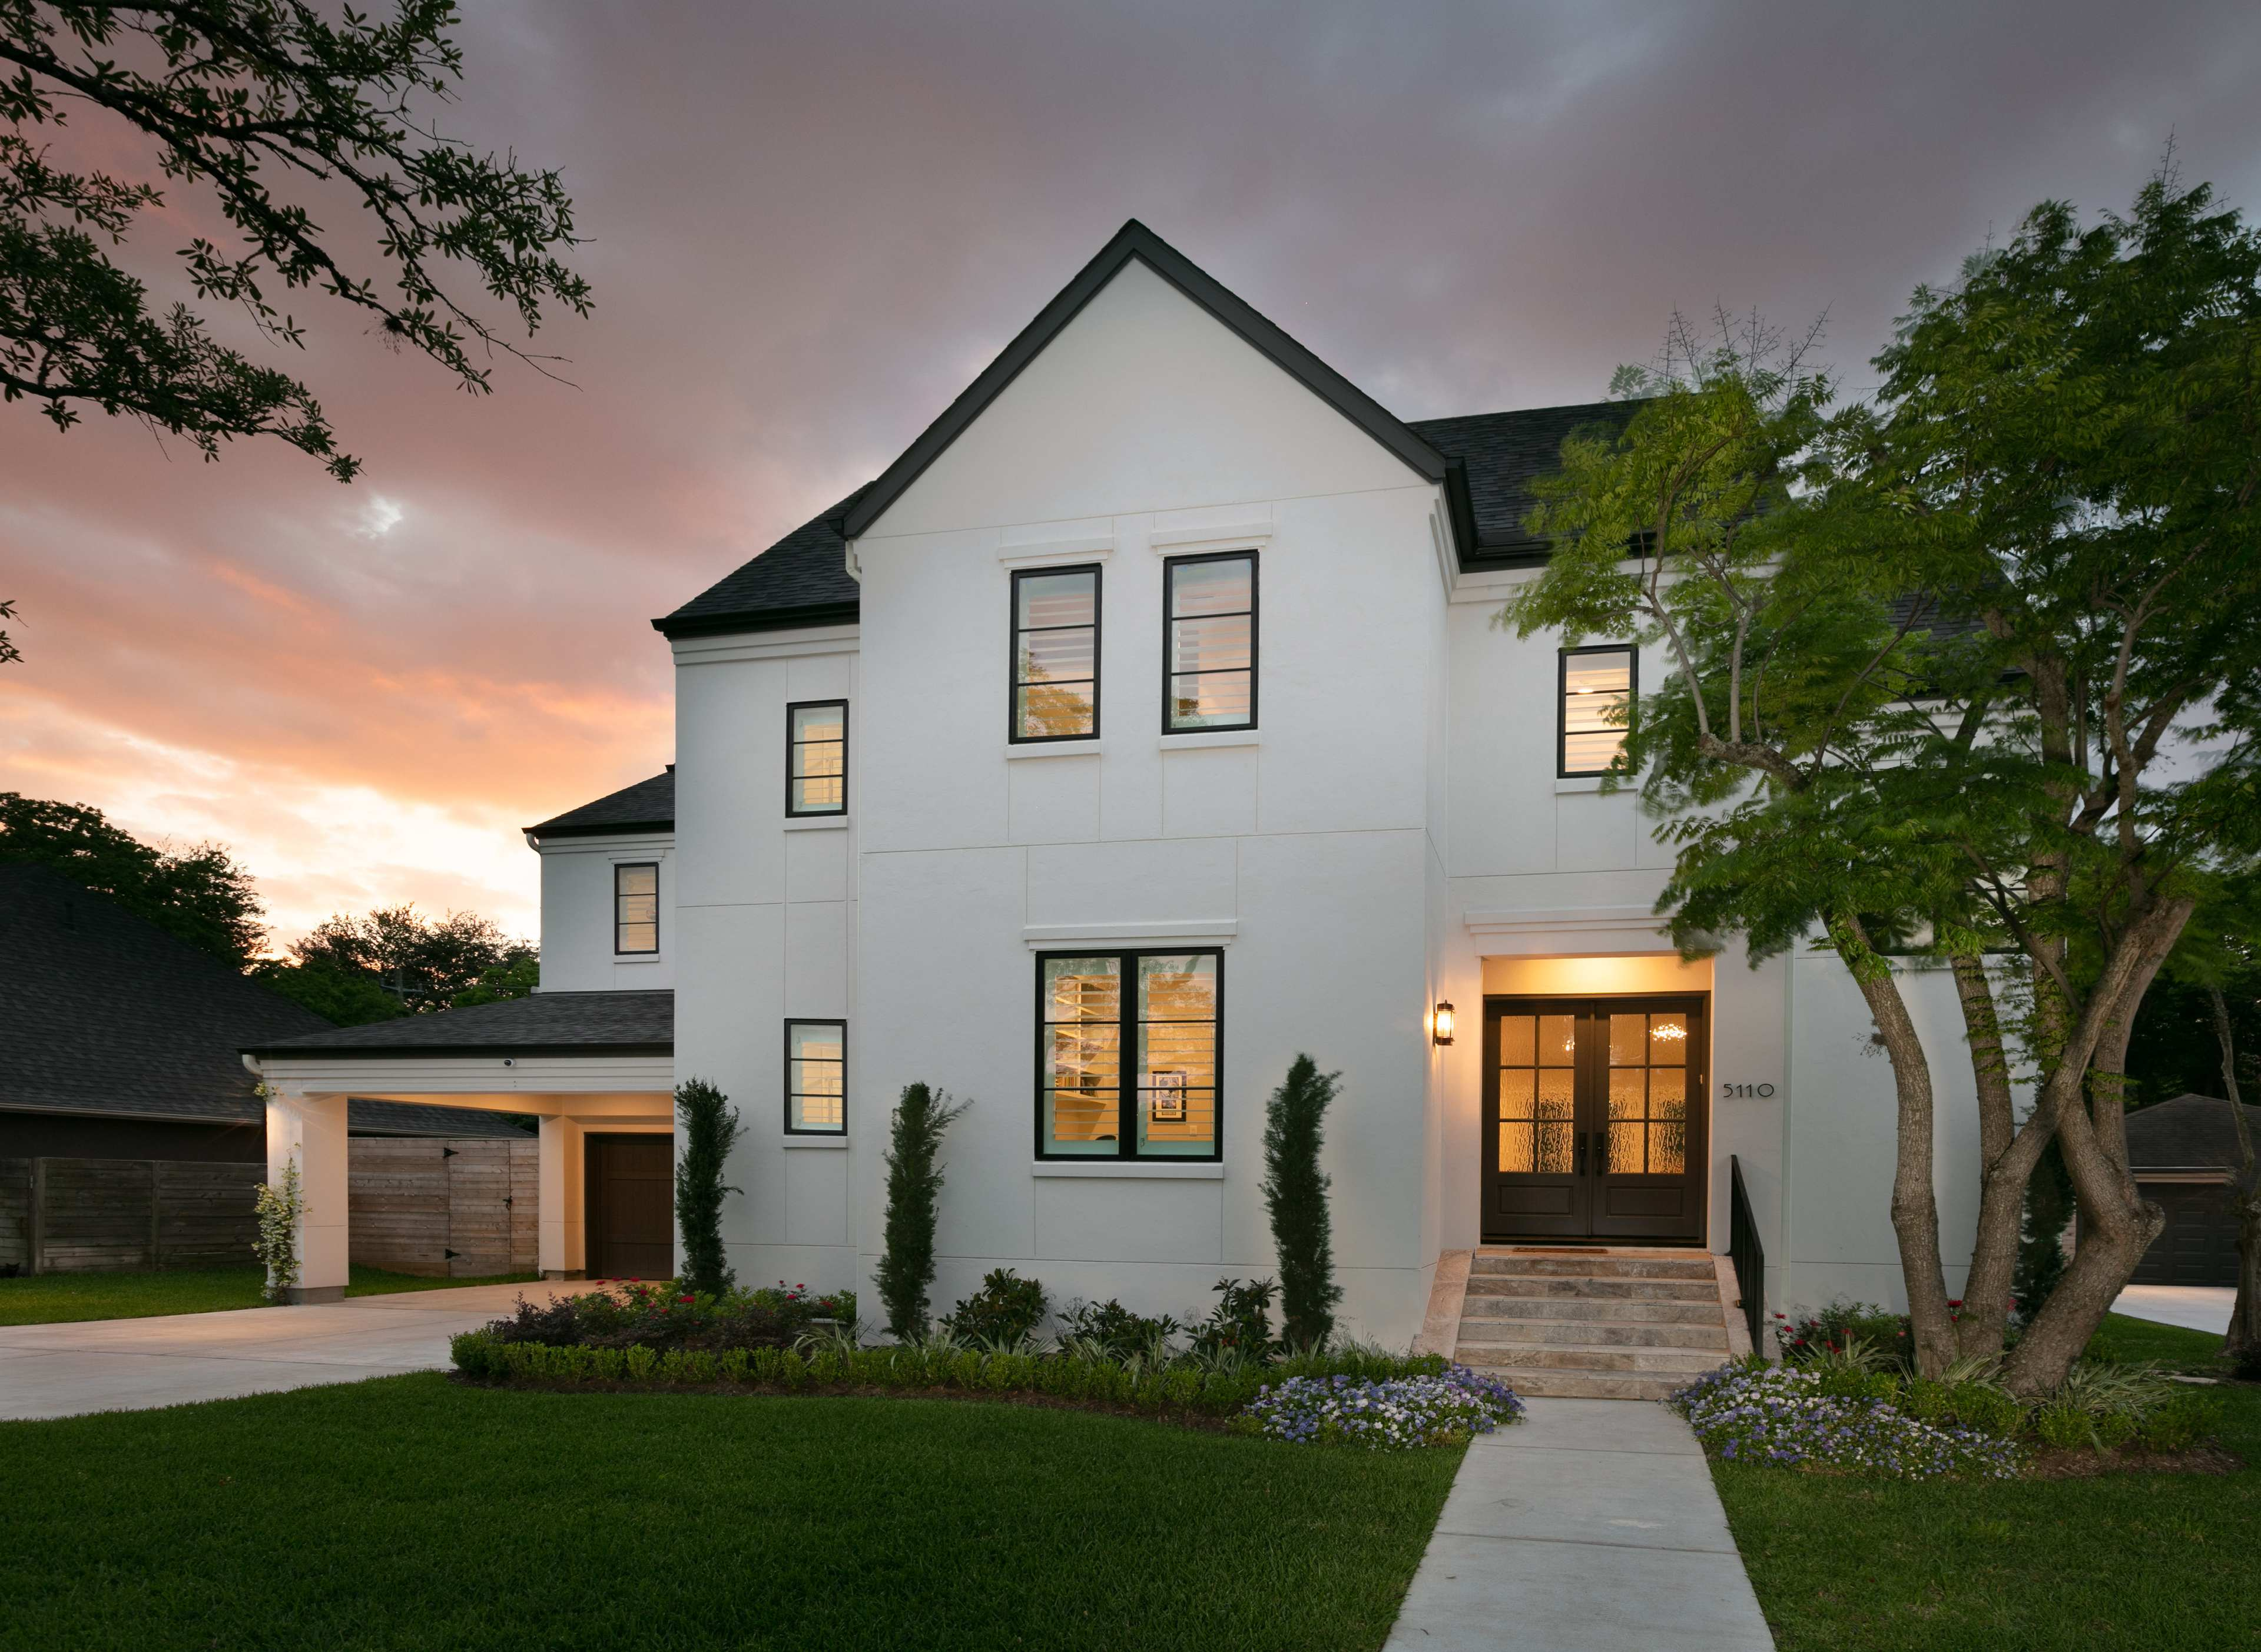 Meyerland Transitional | BuildFBG